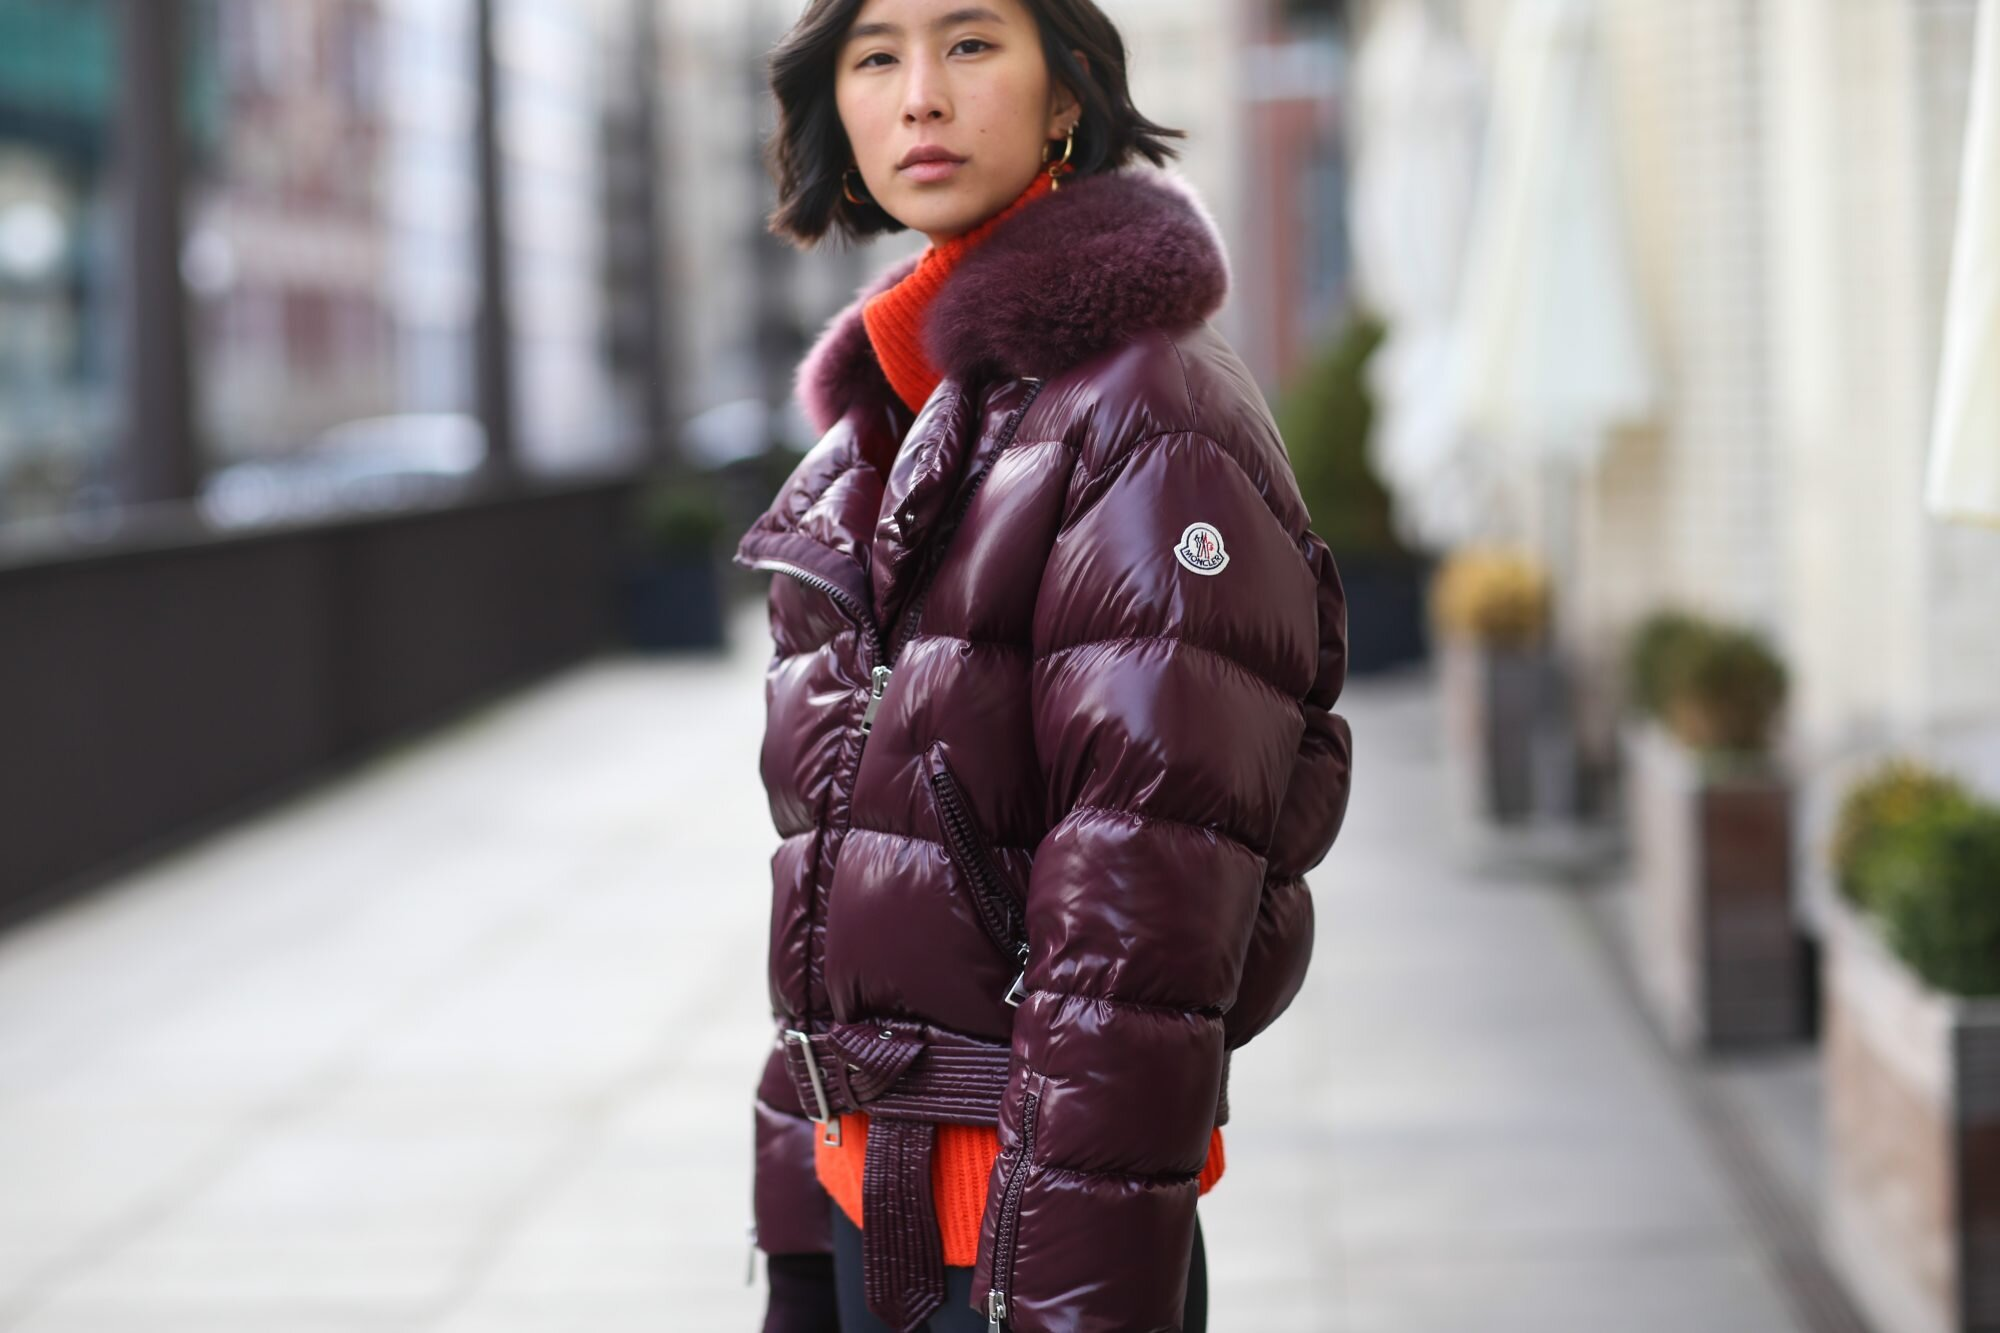 ec4e4808fa7 The Winter Coats Petites Always Look Amazing In | InStyle.com